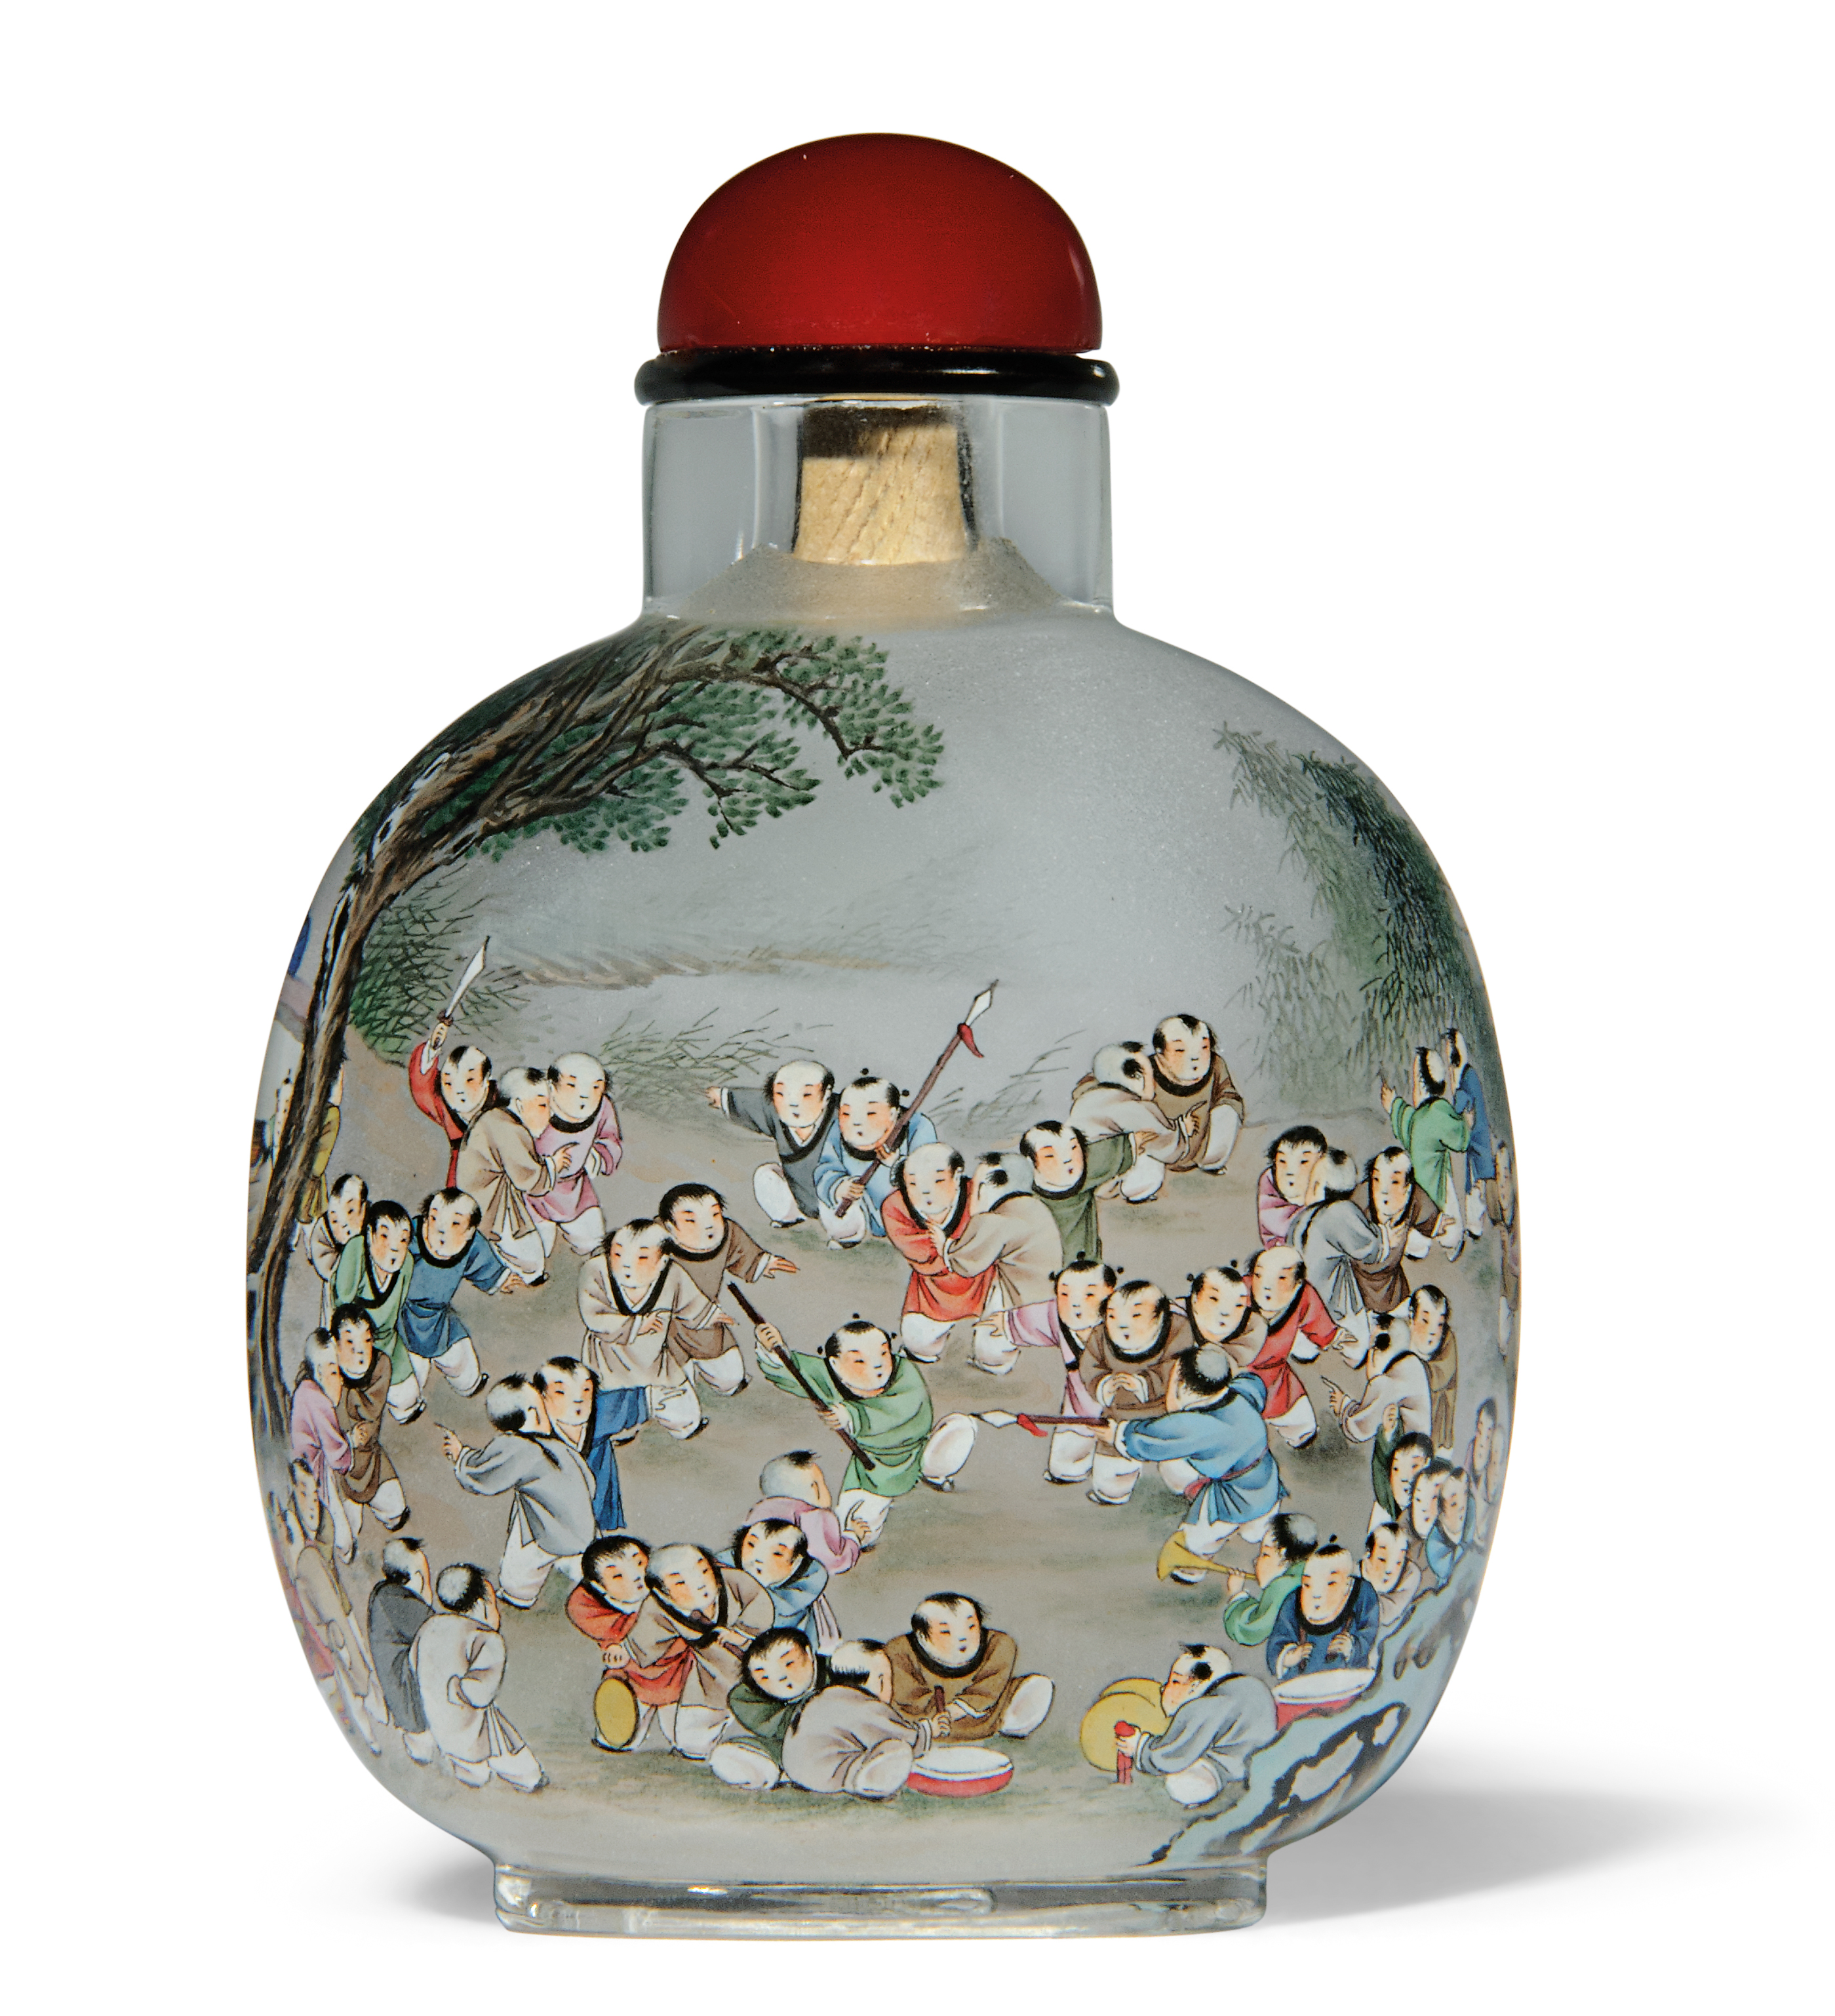 A 'HUNDRED BOYS' INSIDE-PAINTED GLASS SNUFF BOTTLE AND A 'COWHERD' INSIDE-PAINTED AGATE SNUFF BOTTLE